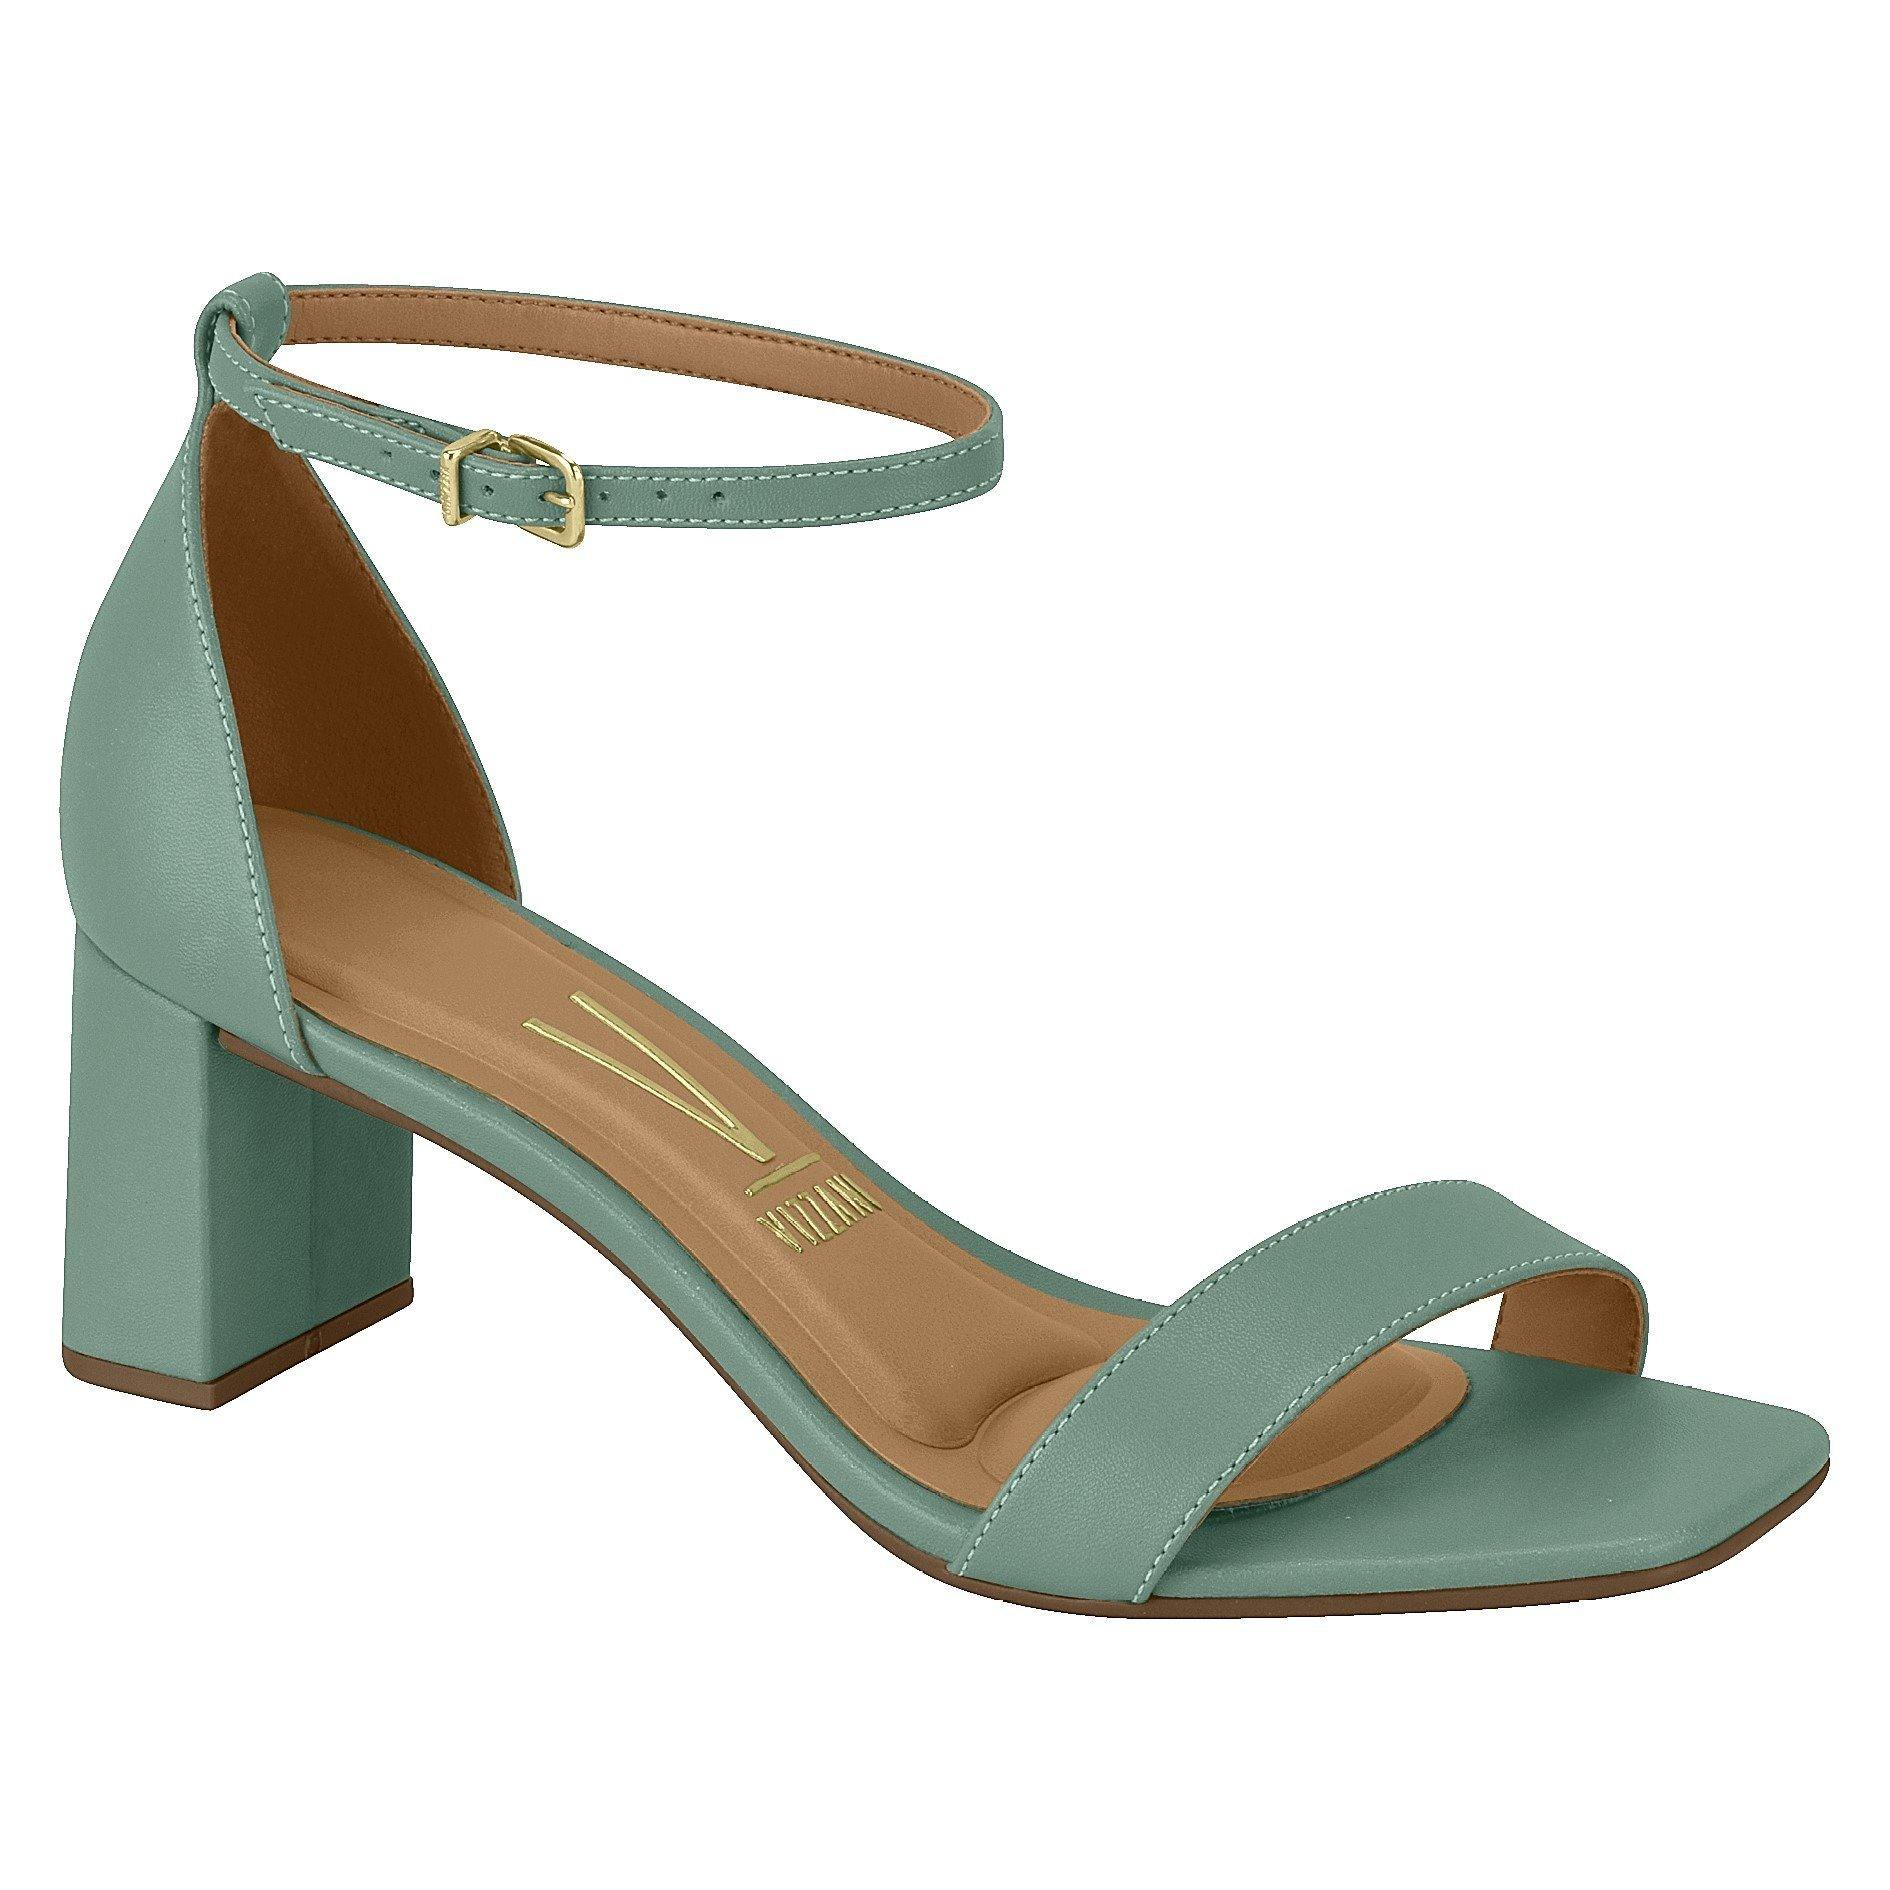 Vizzano 6430-101 Block Heel Sandal in Mint Green Napa